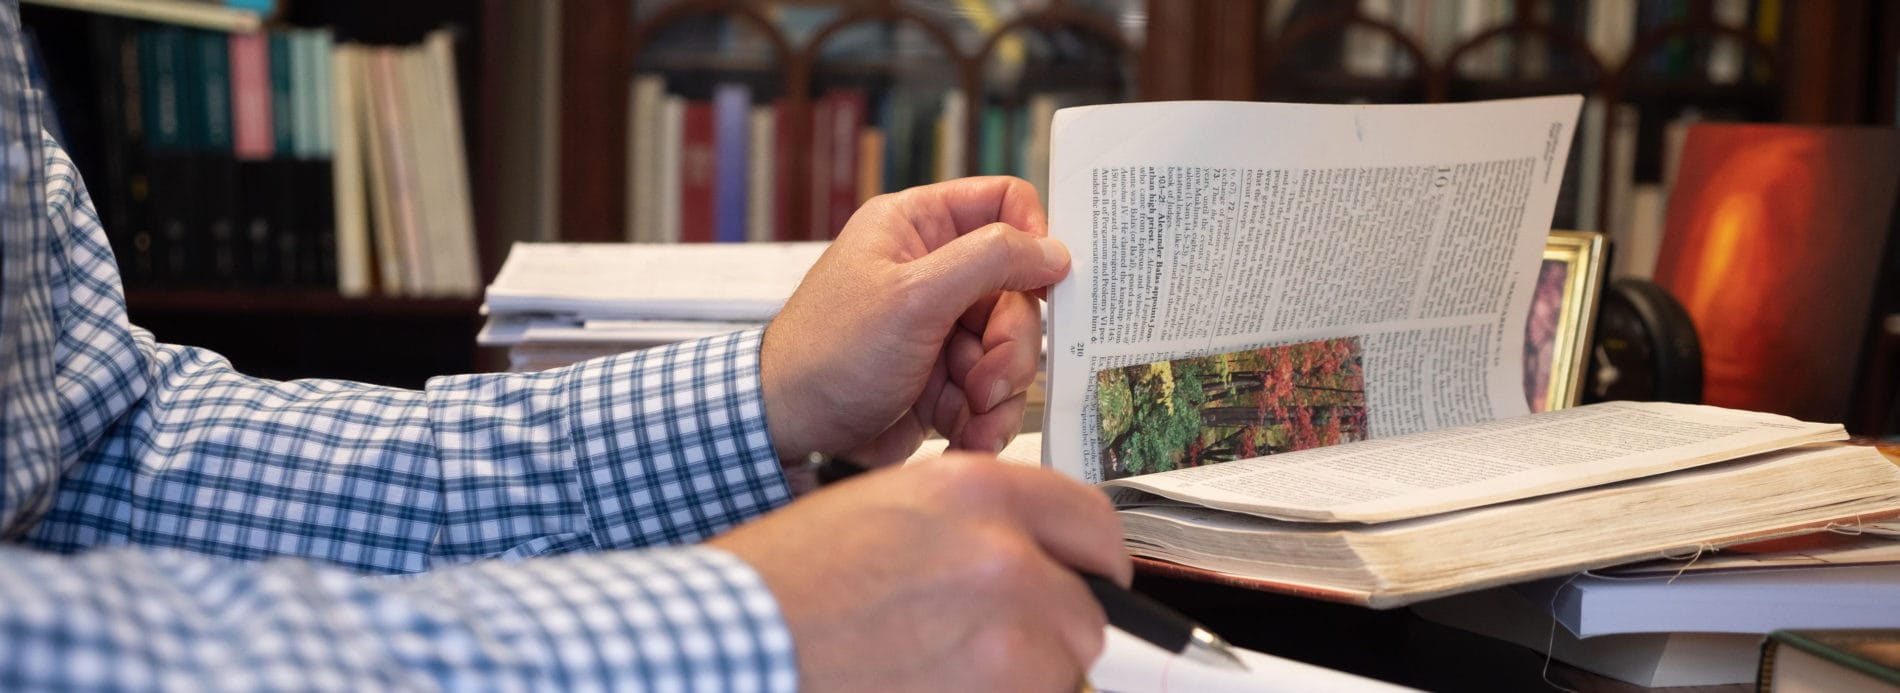 Rev. Ken Kovacs consults a scholarly text while preparing for a sermon